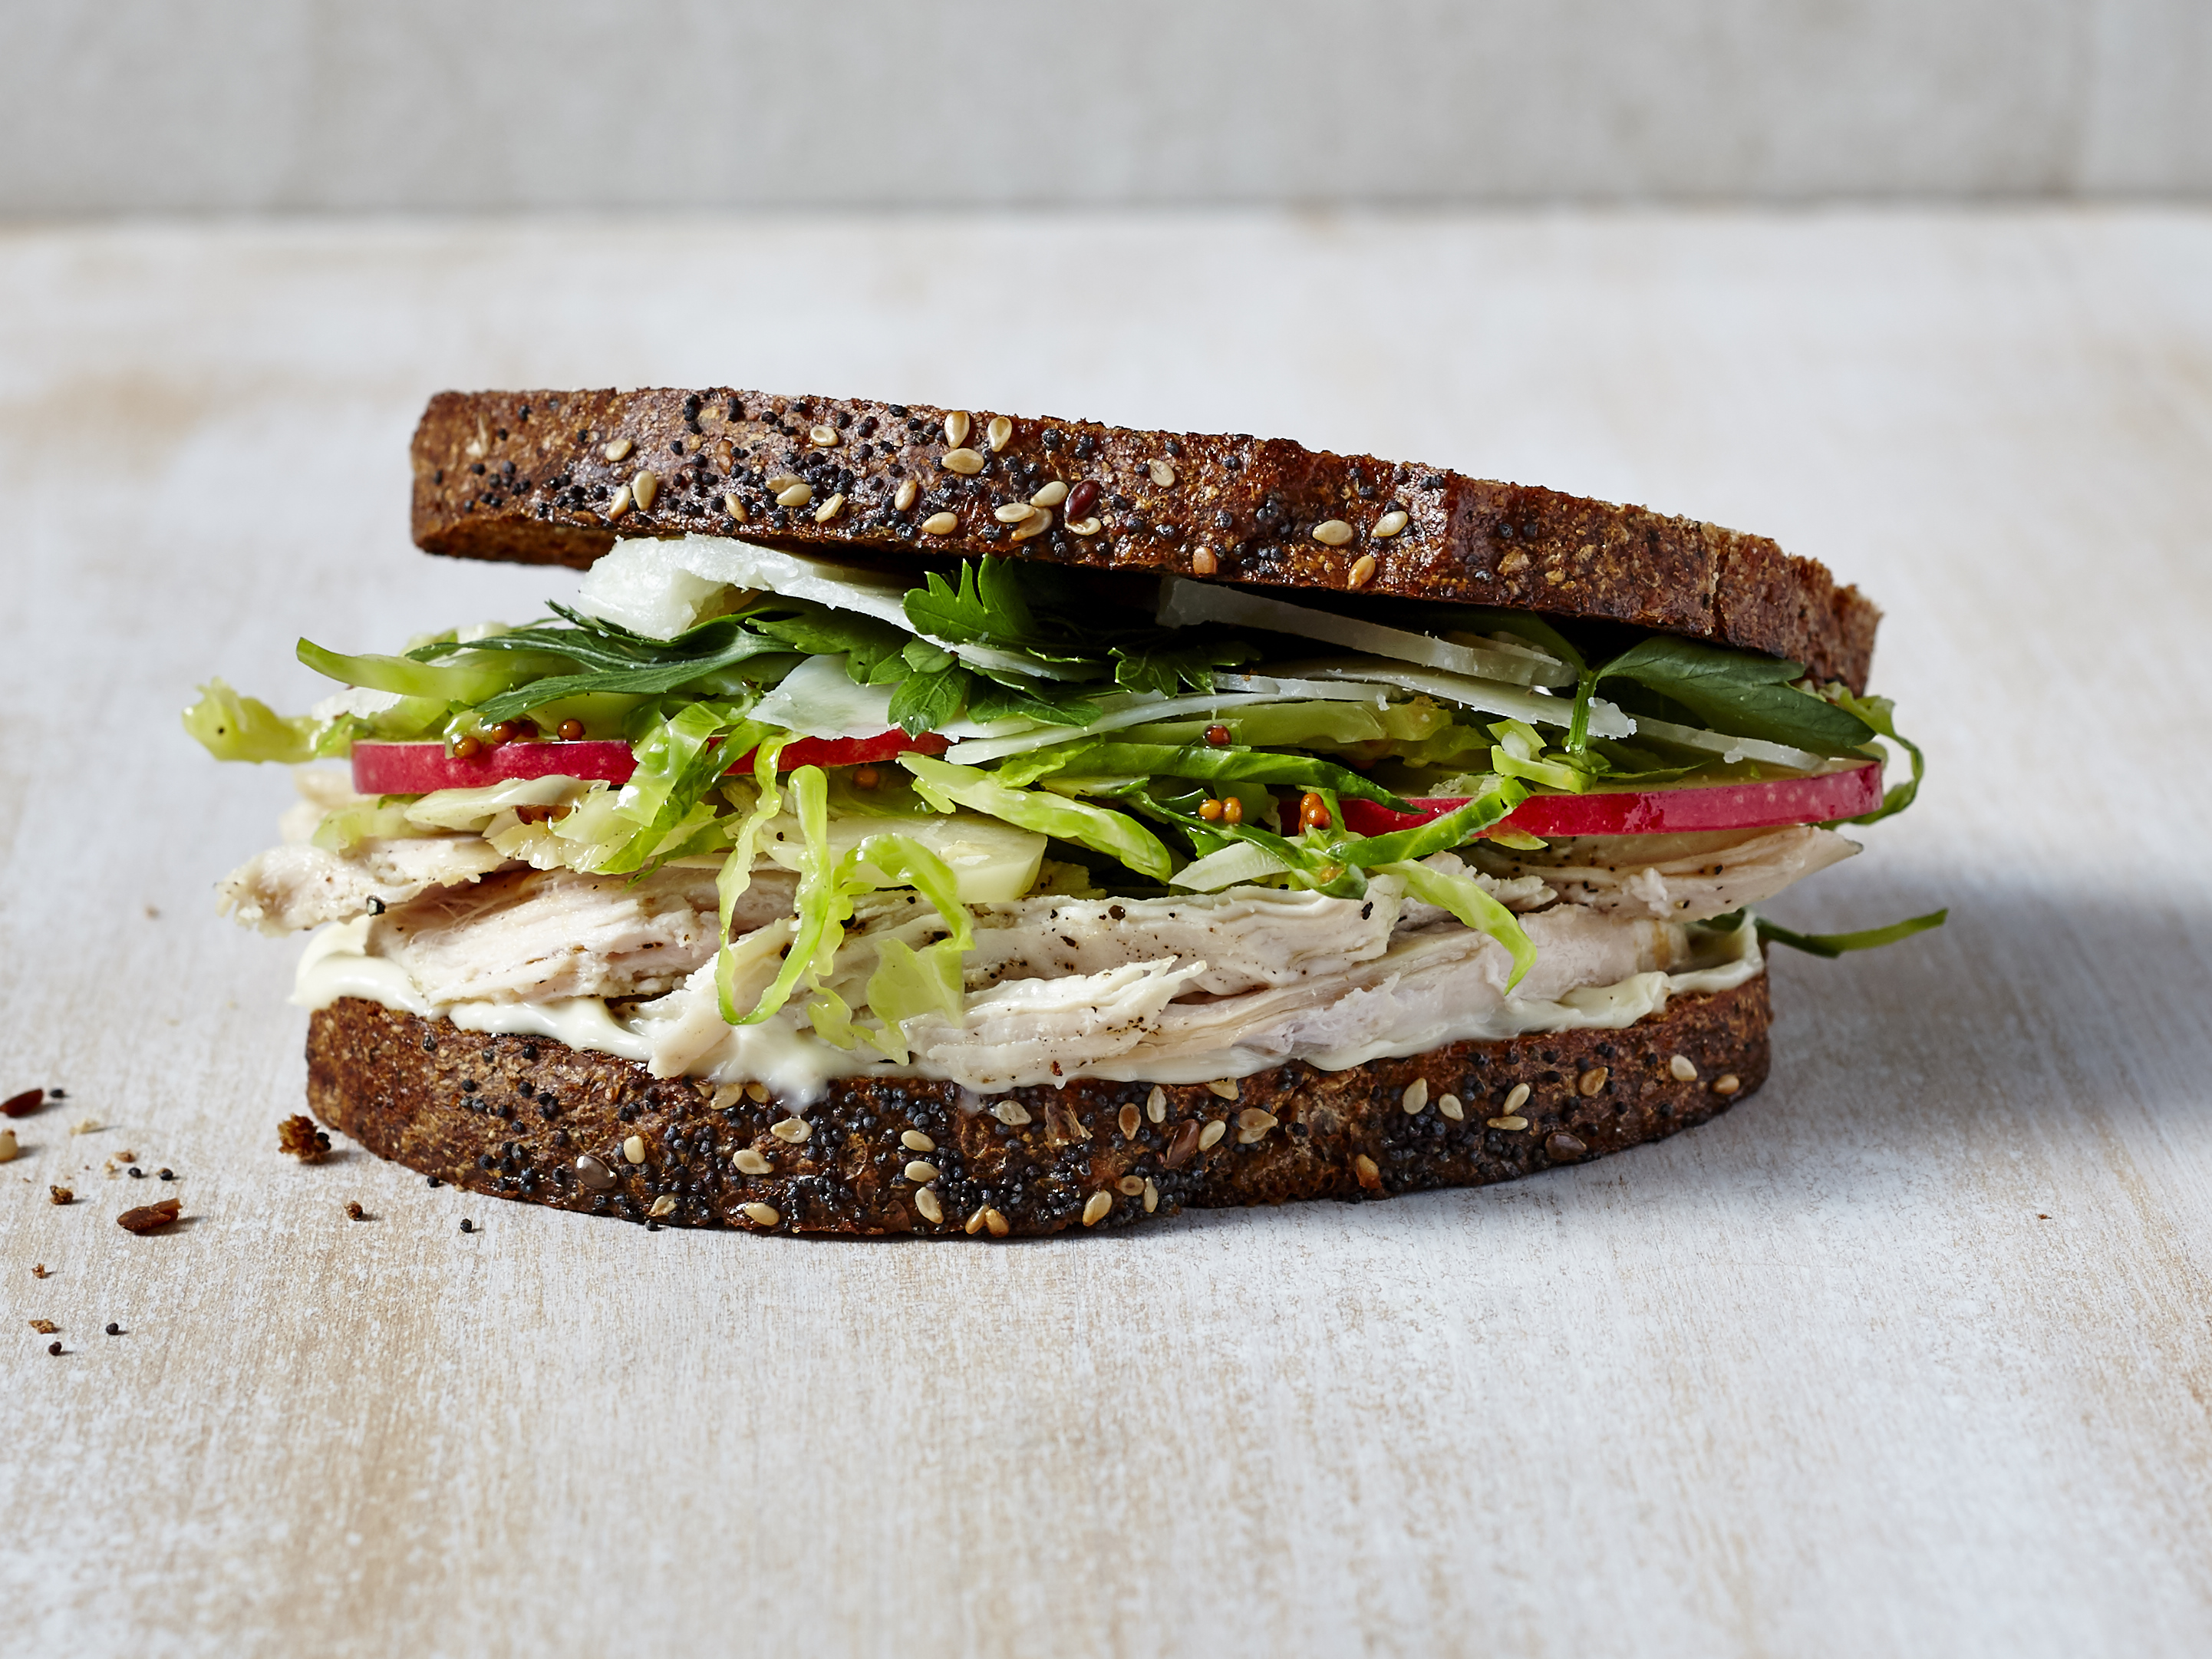 Apple, Turkey, and Brussels Sprouts Sandwich